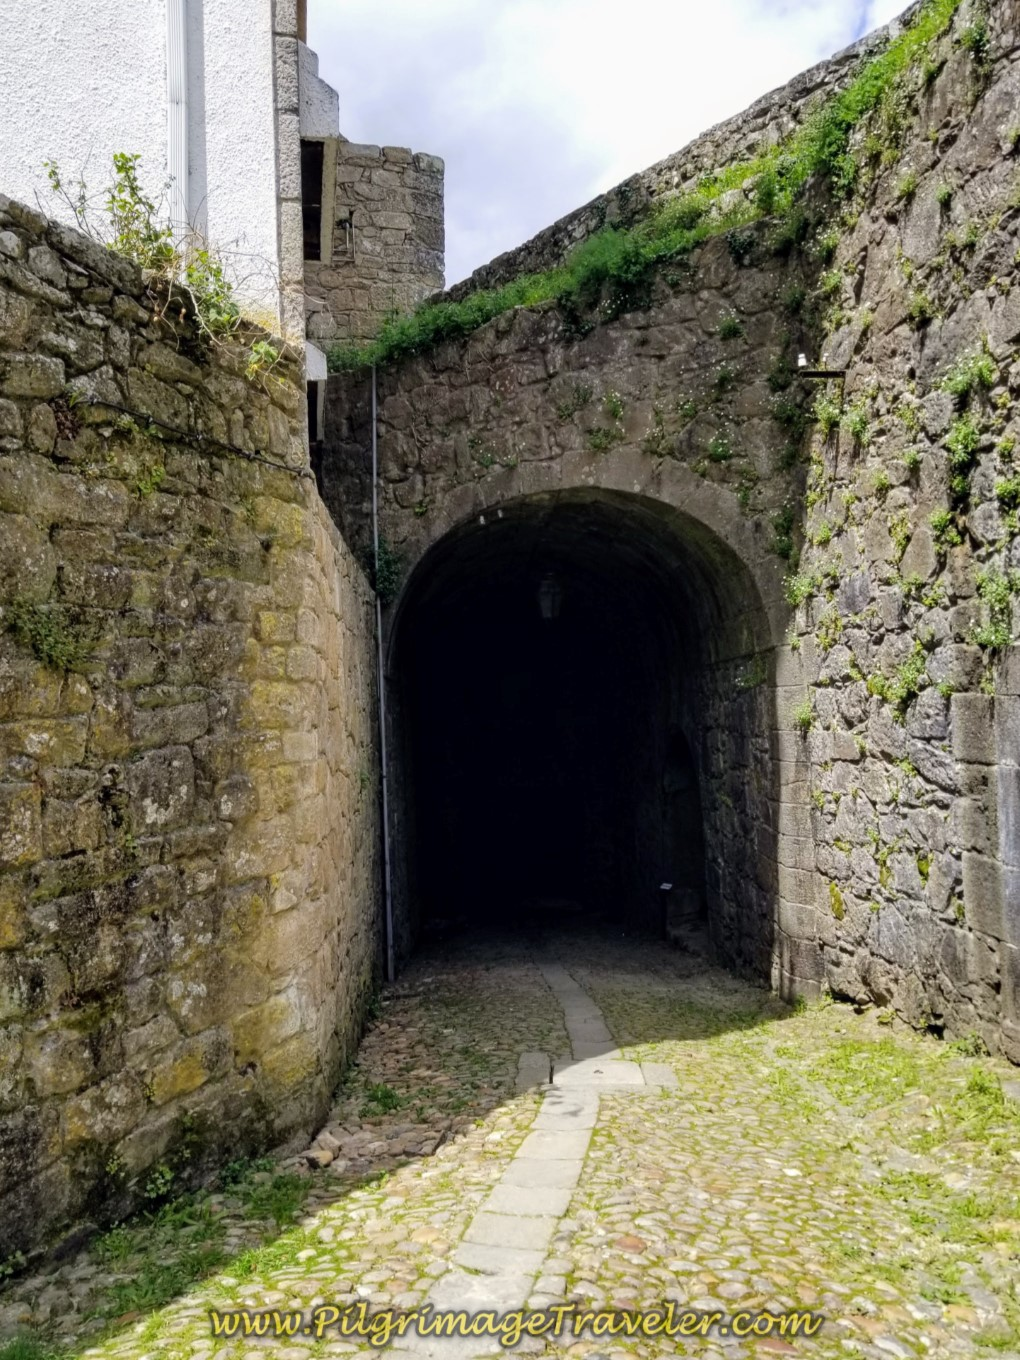 Exiting Valença Through the Ramparts on day nineteen on the Central Route of the Portuguese Camino